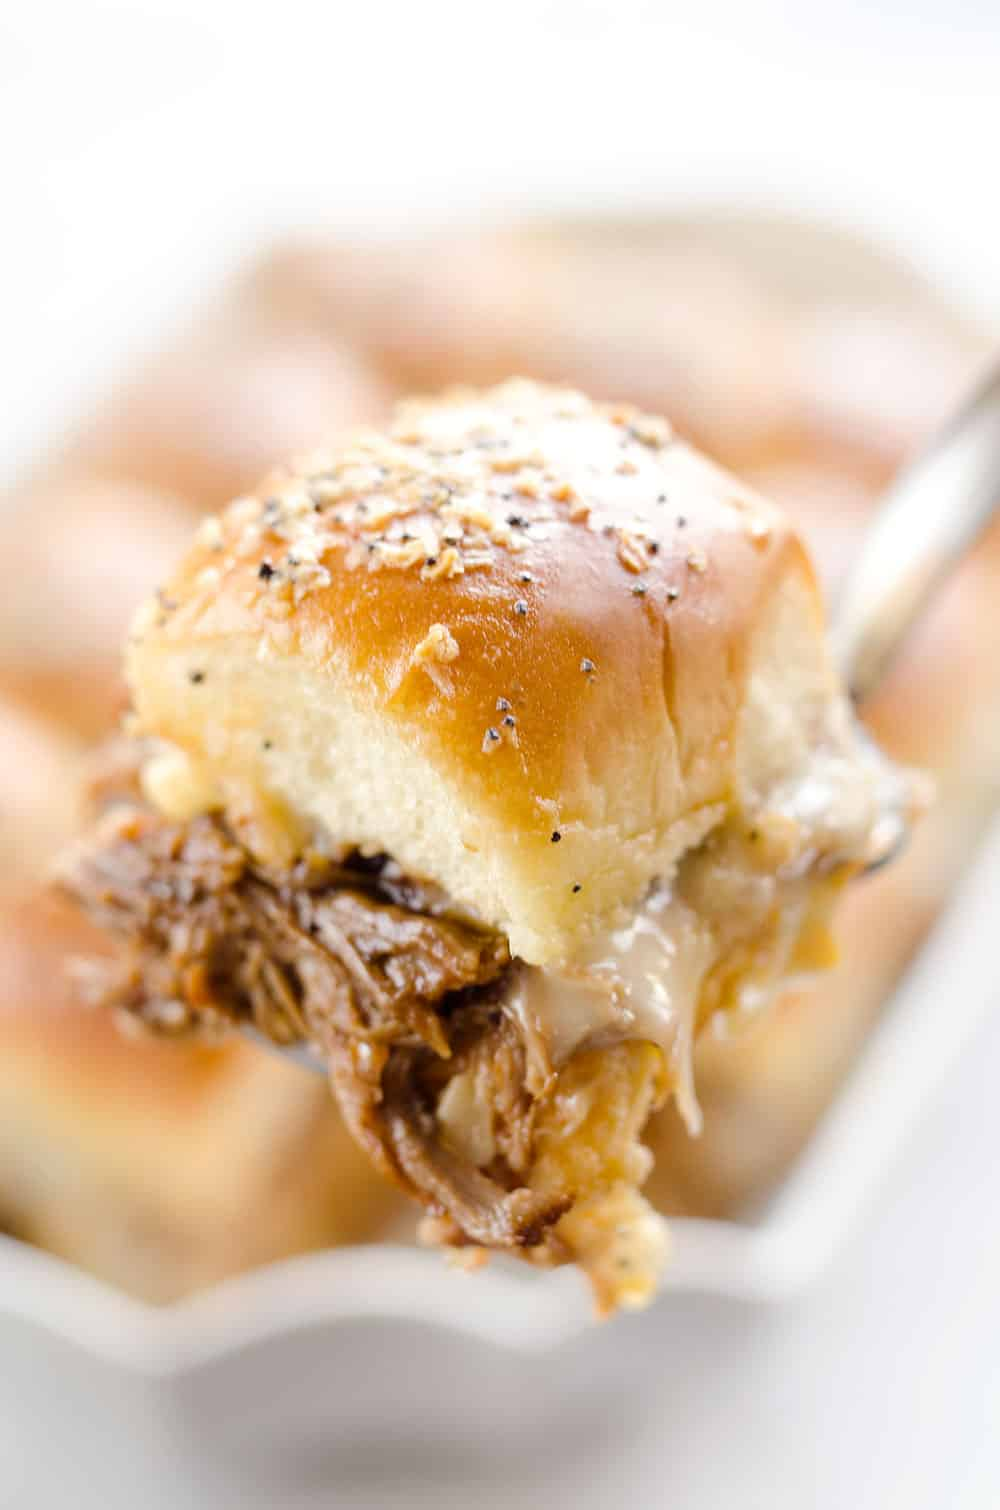 Cheesy BBQ Pork Baked Sliders are an easy family friendly meal with BBQ Pulled Pork and creamy Muenster cheese layered on Hawaiian buns with a butter sauce